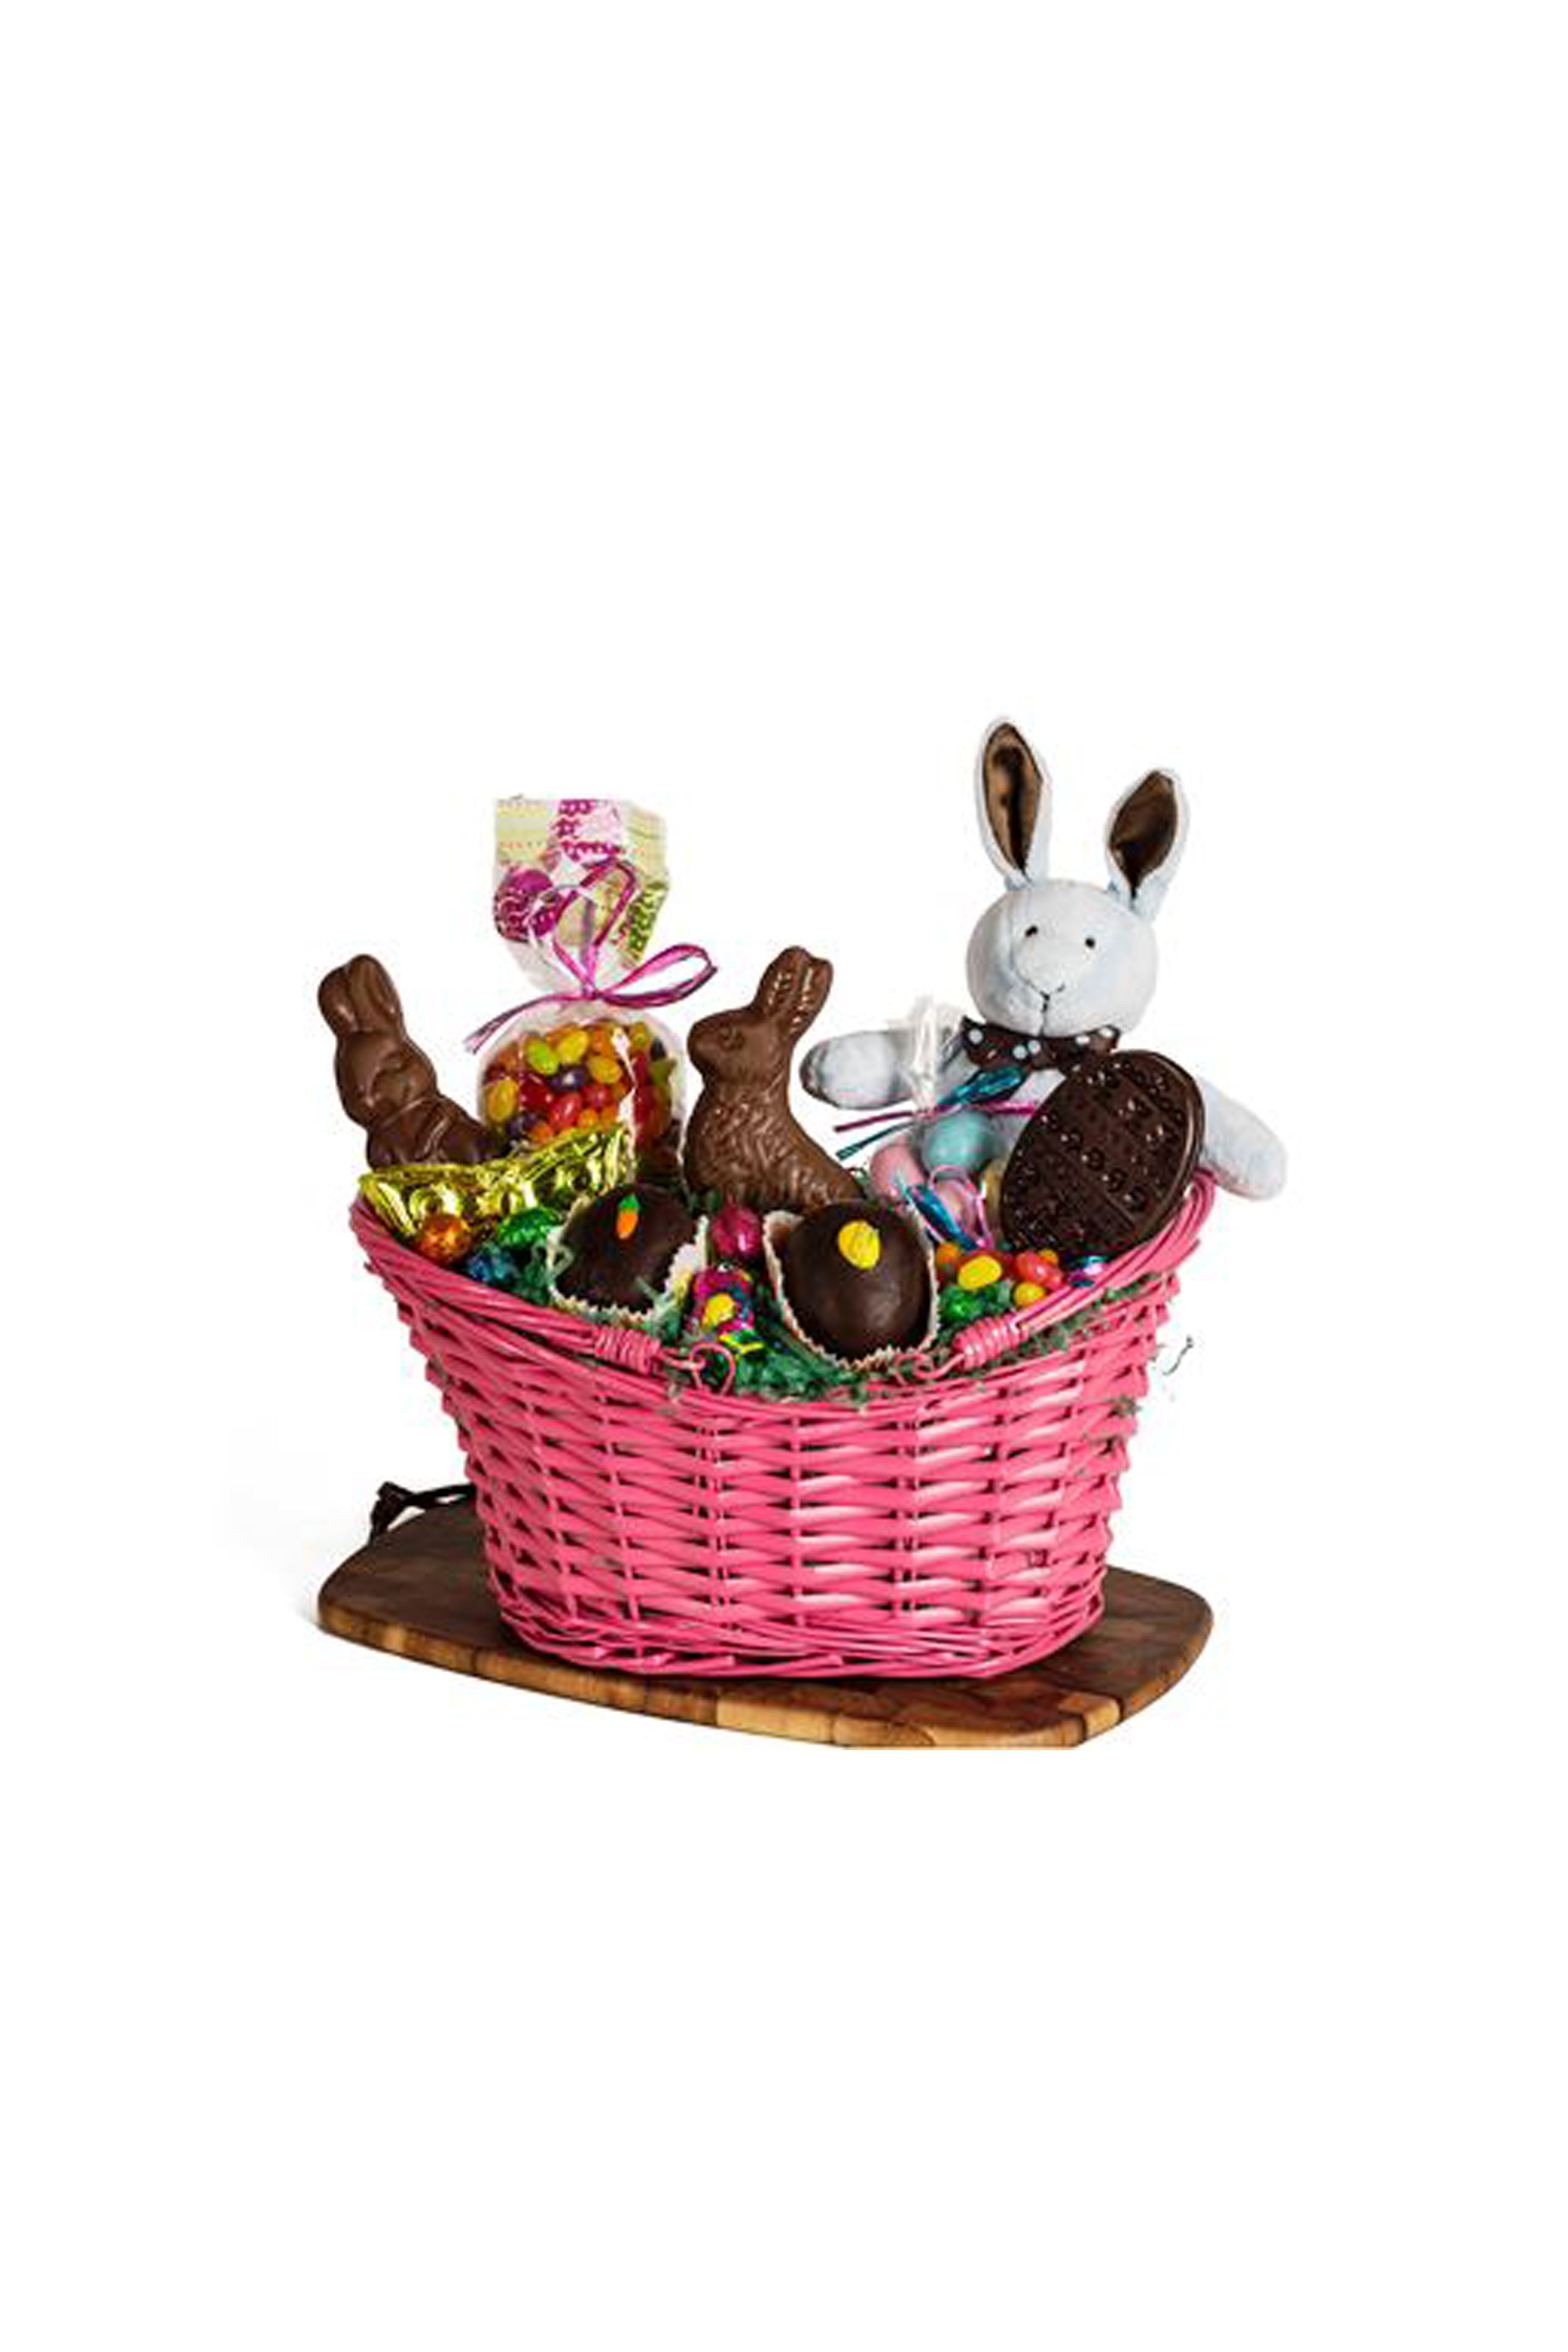 11 Best Pre-Made Easter Baskets for 2018 - Top Pre-Filled Easter Baskets